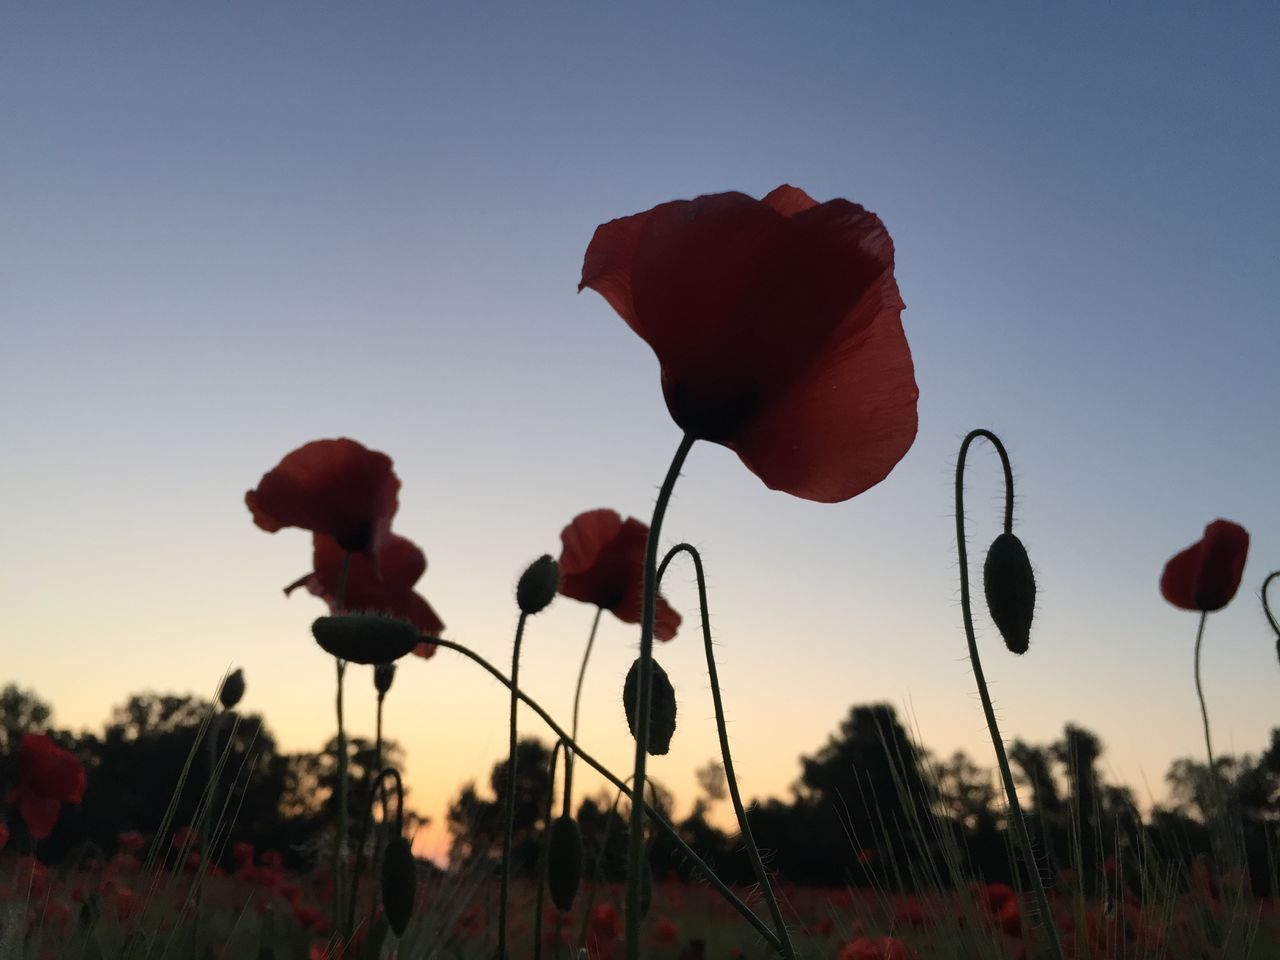 Poppy sunset Beauty In Nature Blooming Clear Sky Close-up Day Field Flower Flower Head Focus On Foreground Fragility Freshness Growth Nature No People Outdoors Petal Plant Poppy Poppy Flower Poppy Flowers Red Silhouette Sky Sunset Tree